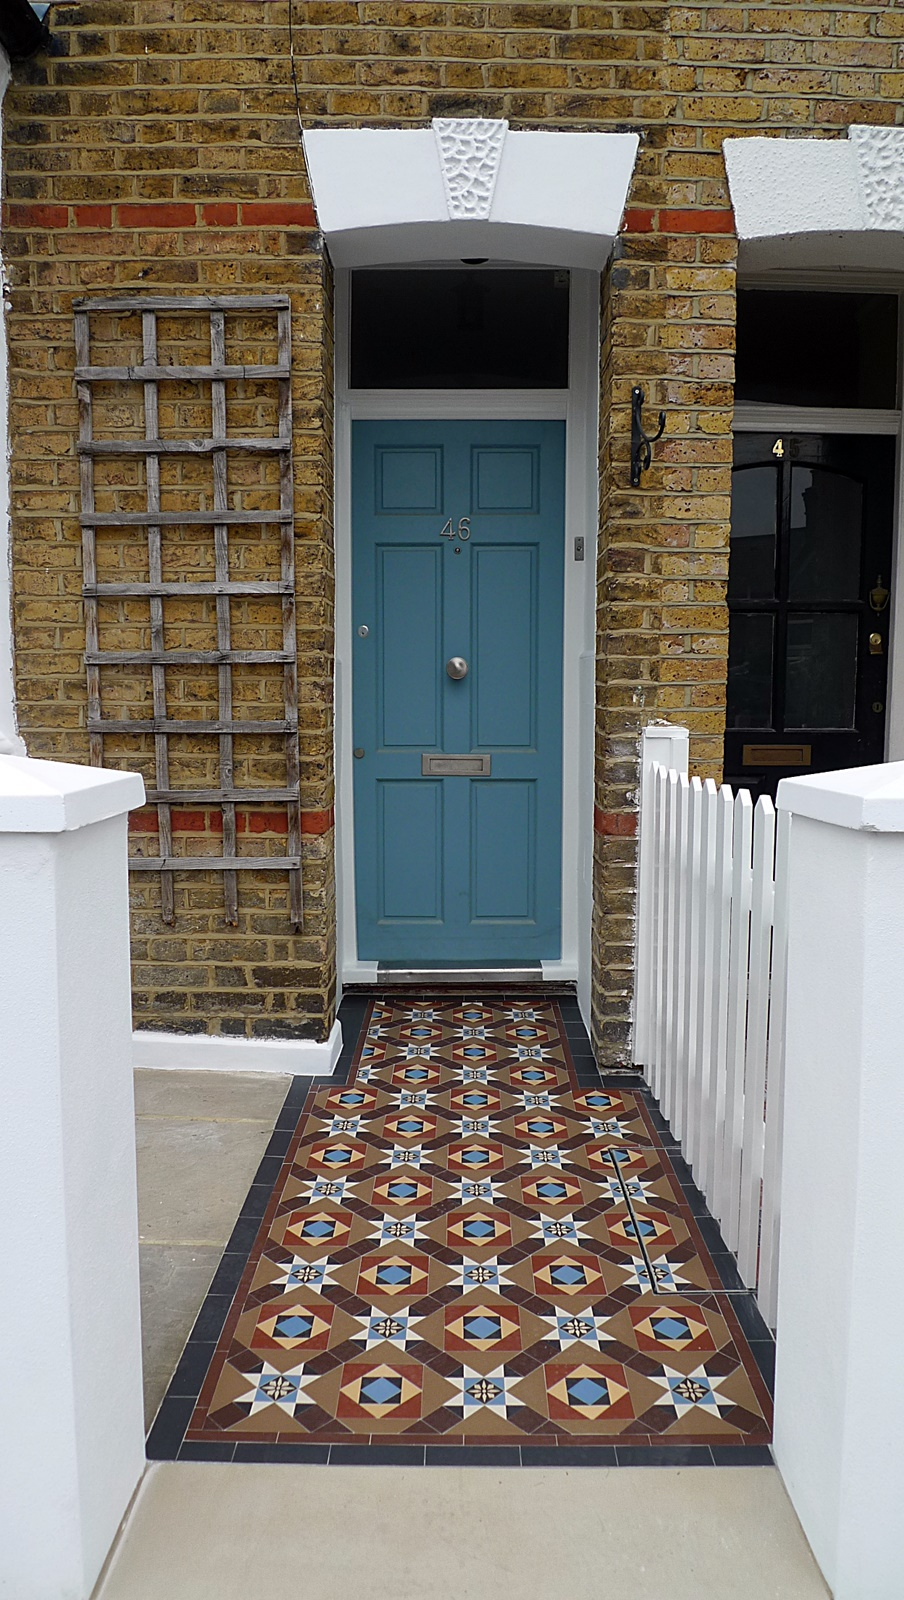 garden wall front garden company victorian edwardian mosaic tile path multi coloured encaustic tile york stone earlsfield wandsworth clapham balham dulwich